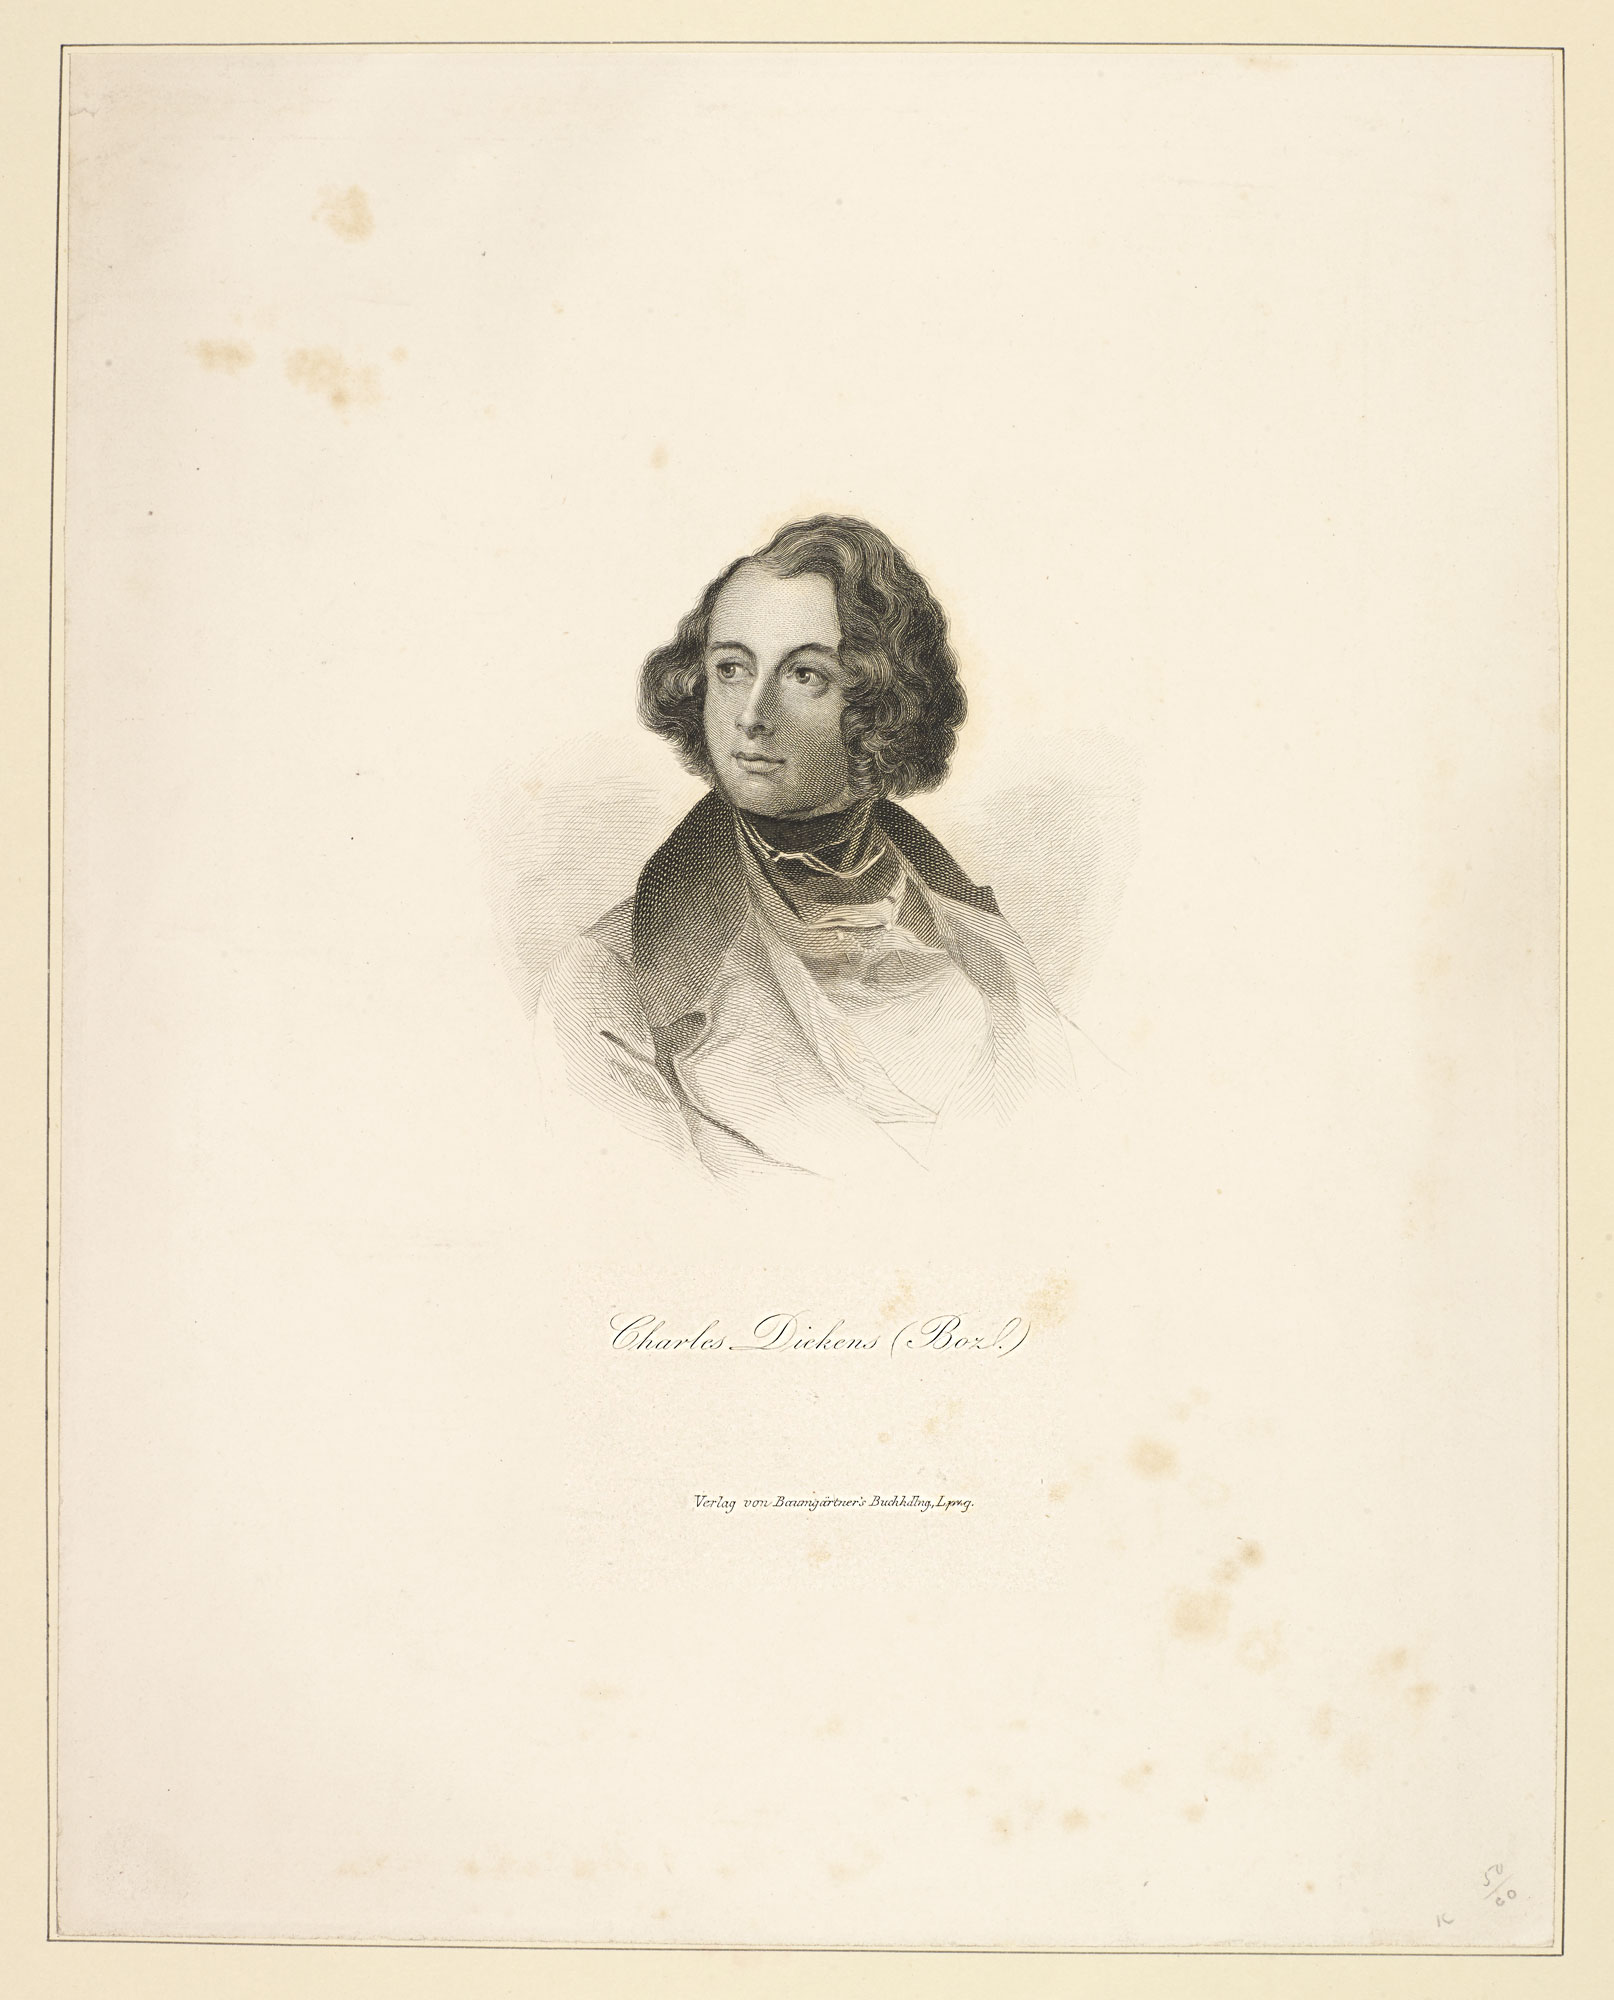 Reproduction of a portrait of Charles Dickens by Daniel Maclise [page: 33]